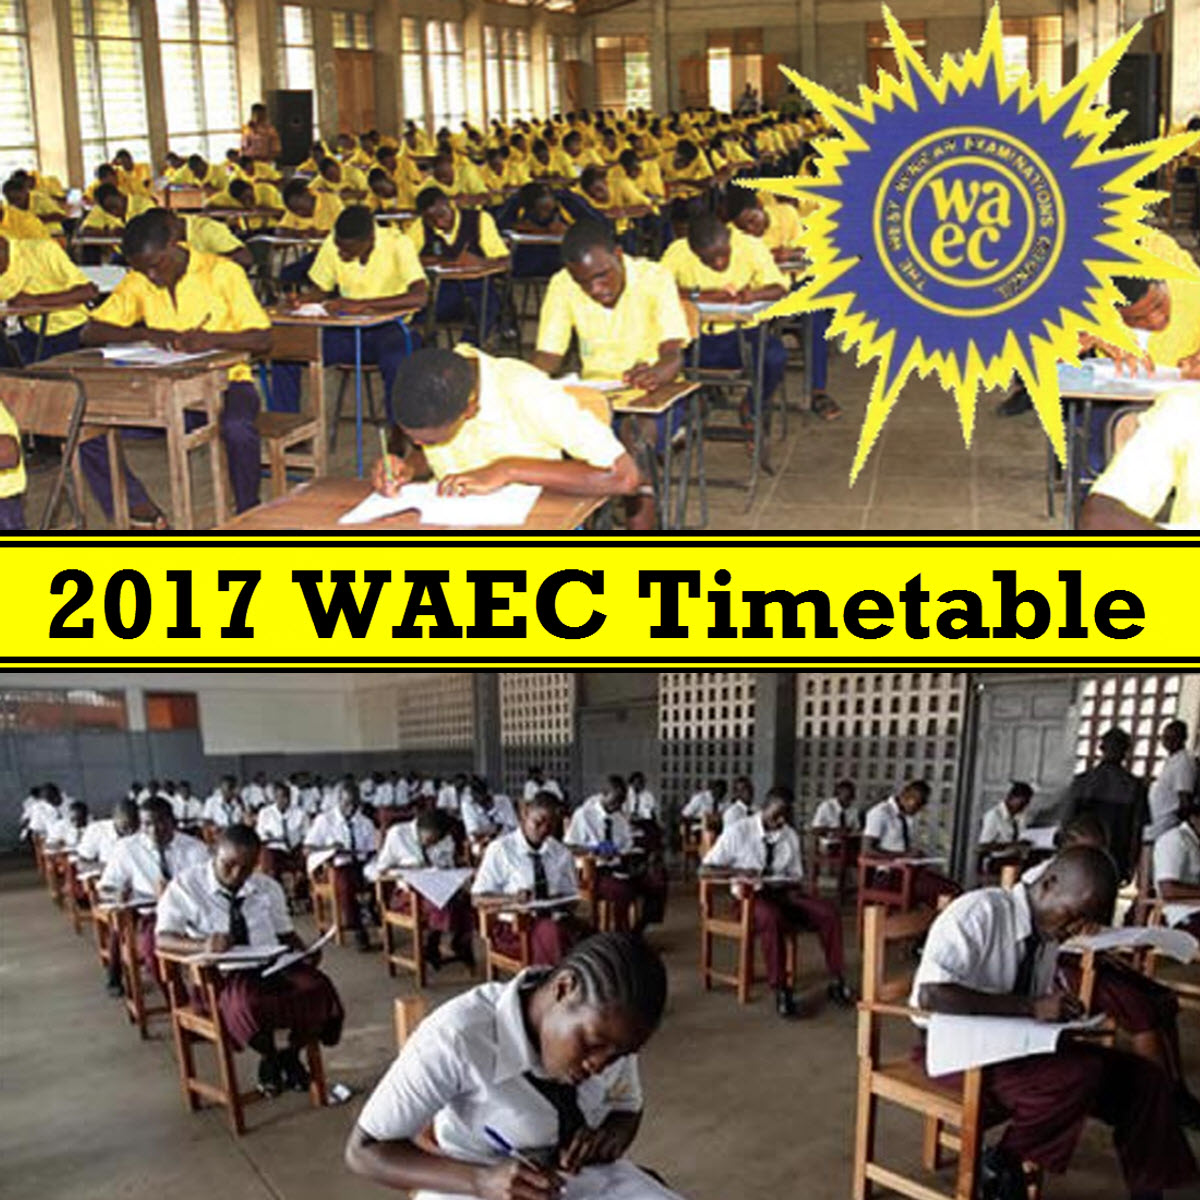 WAEC Timetable 2017 (West African Examination Council)